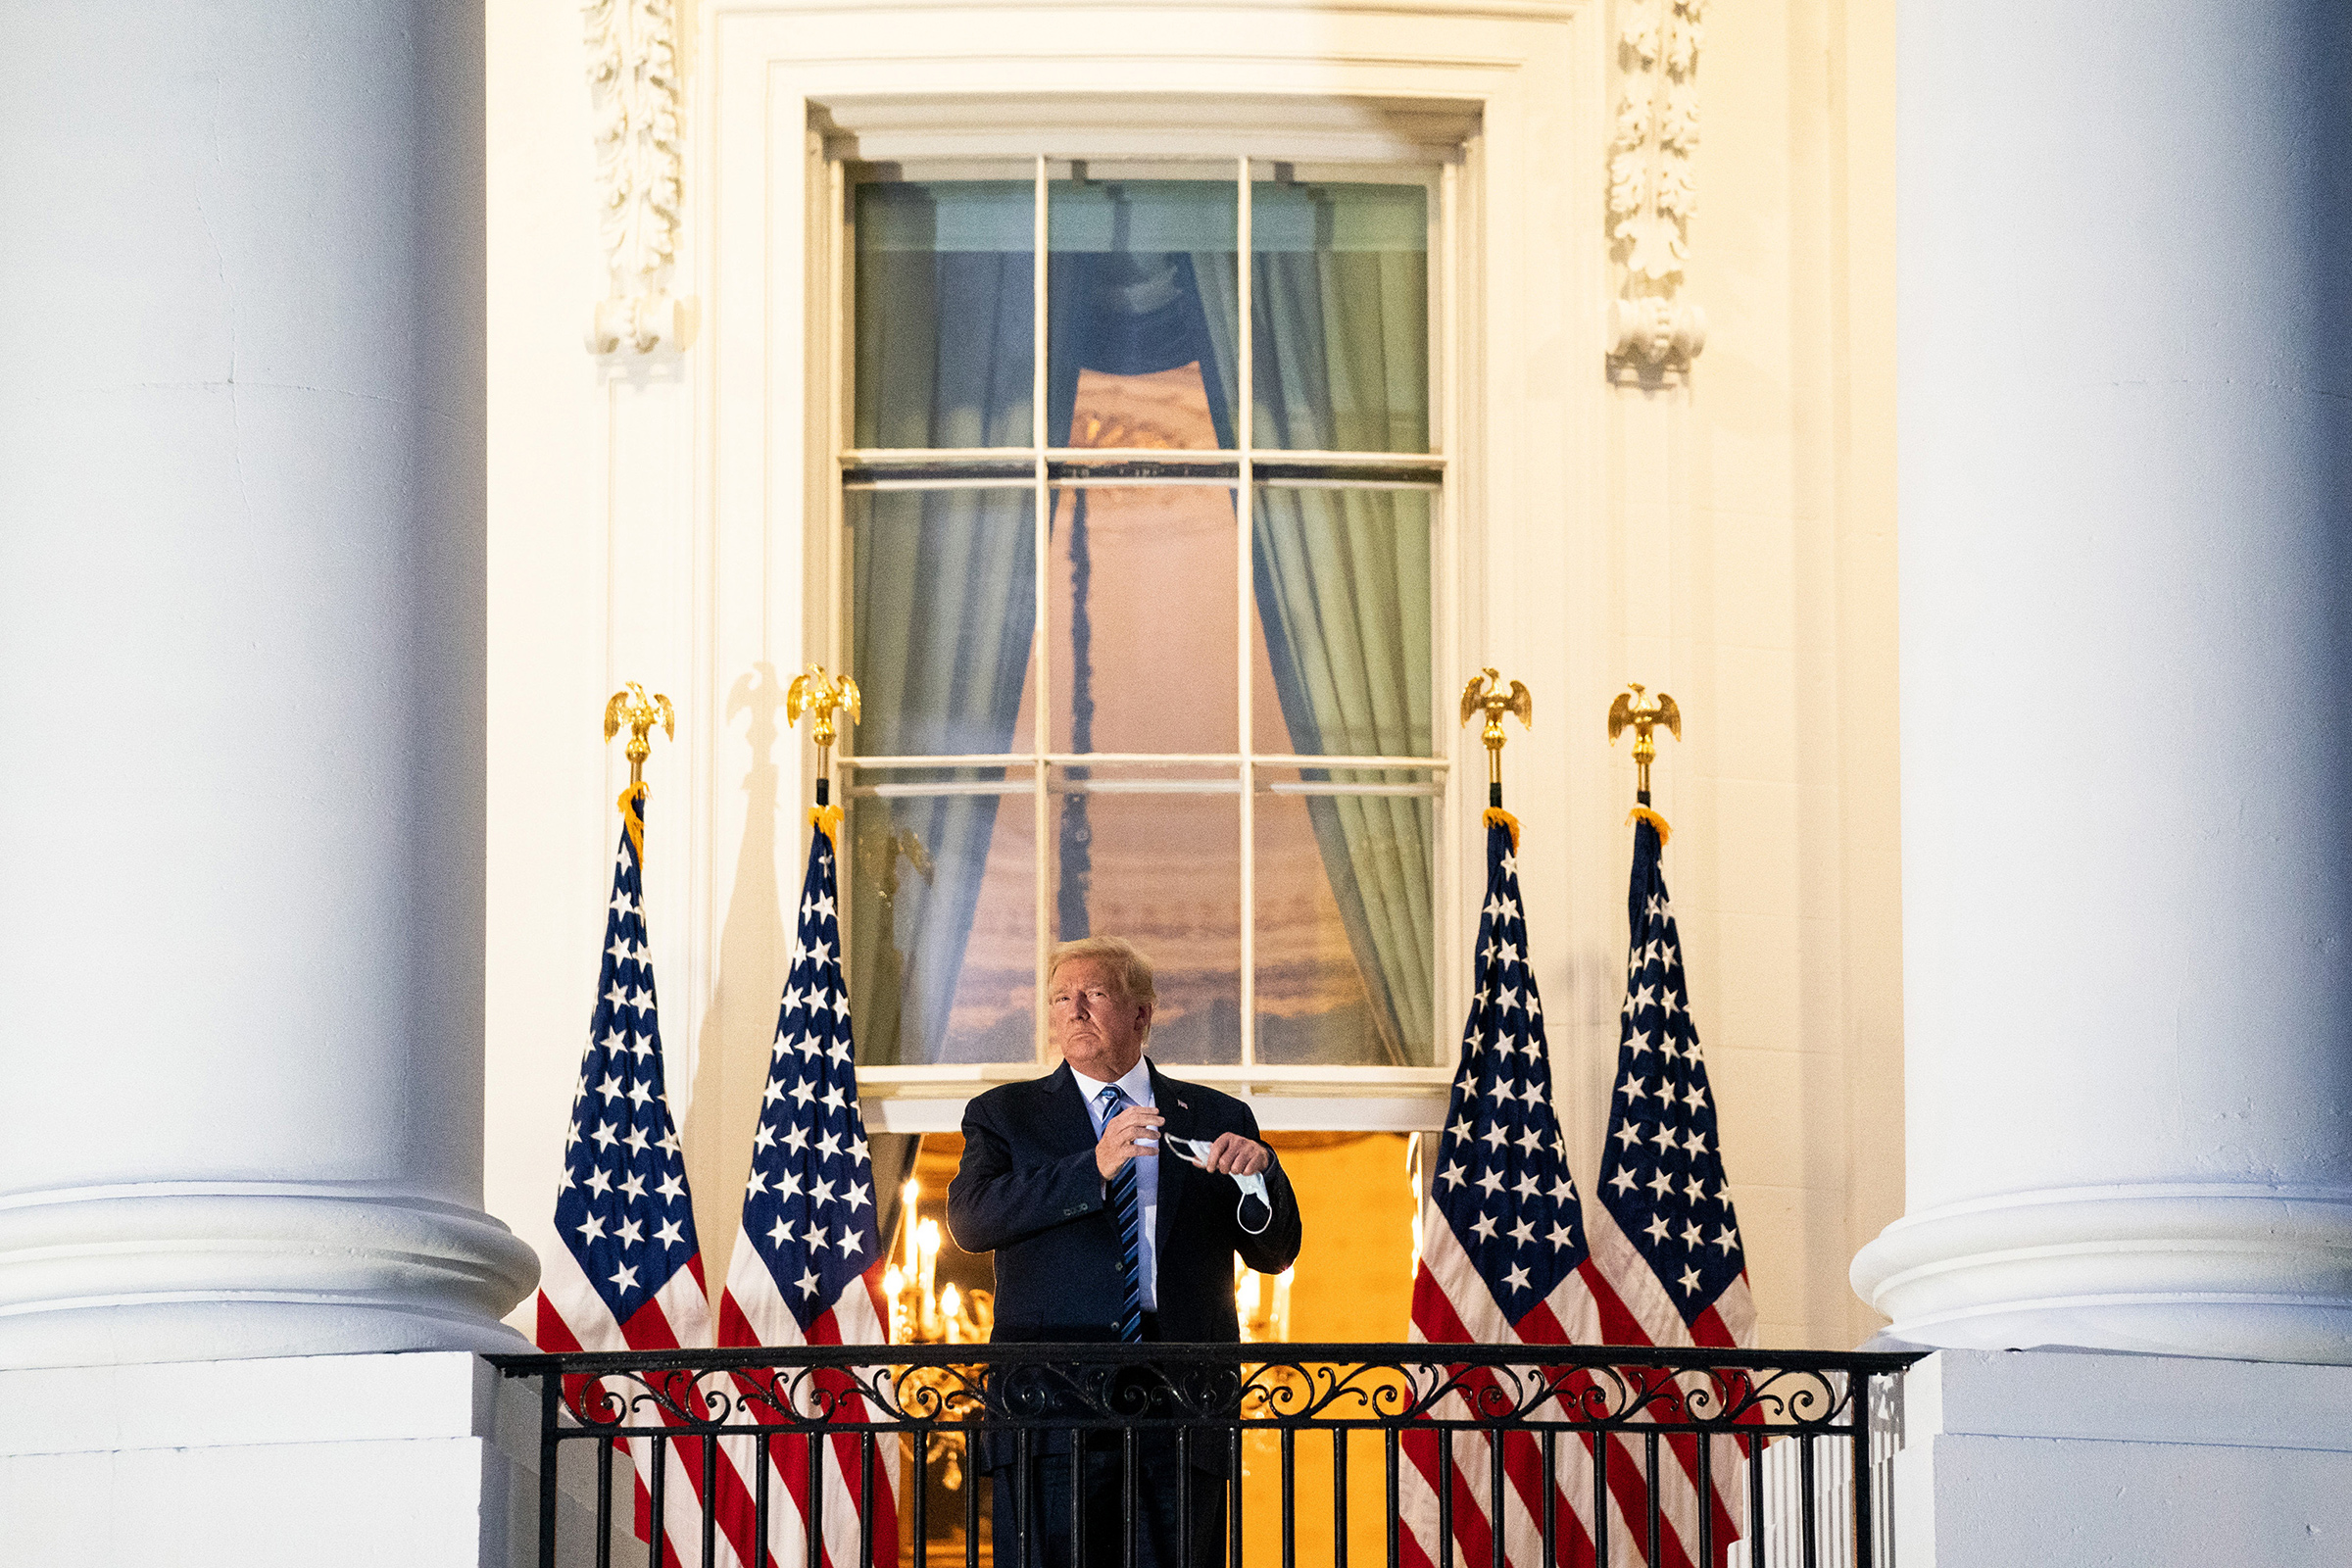 President Trump stages a theatrical return to the White House on Oct. 5 after three days of hospitalization for COVID-19